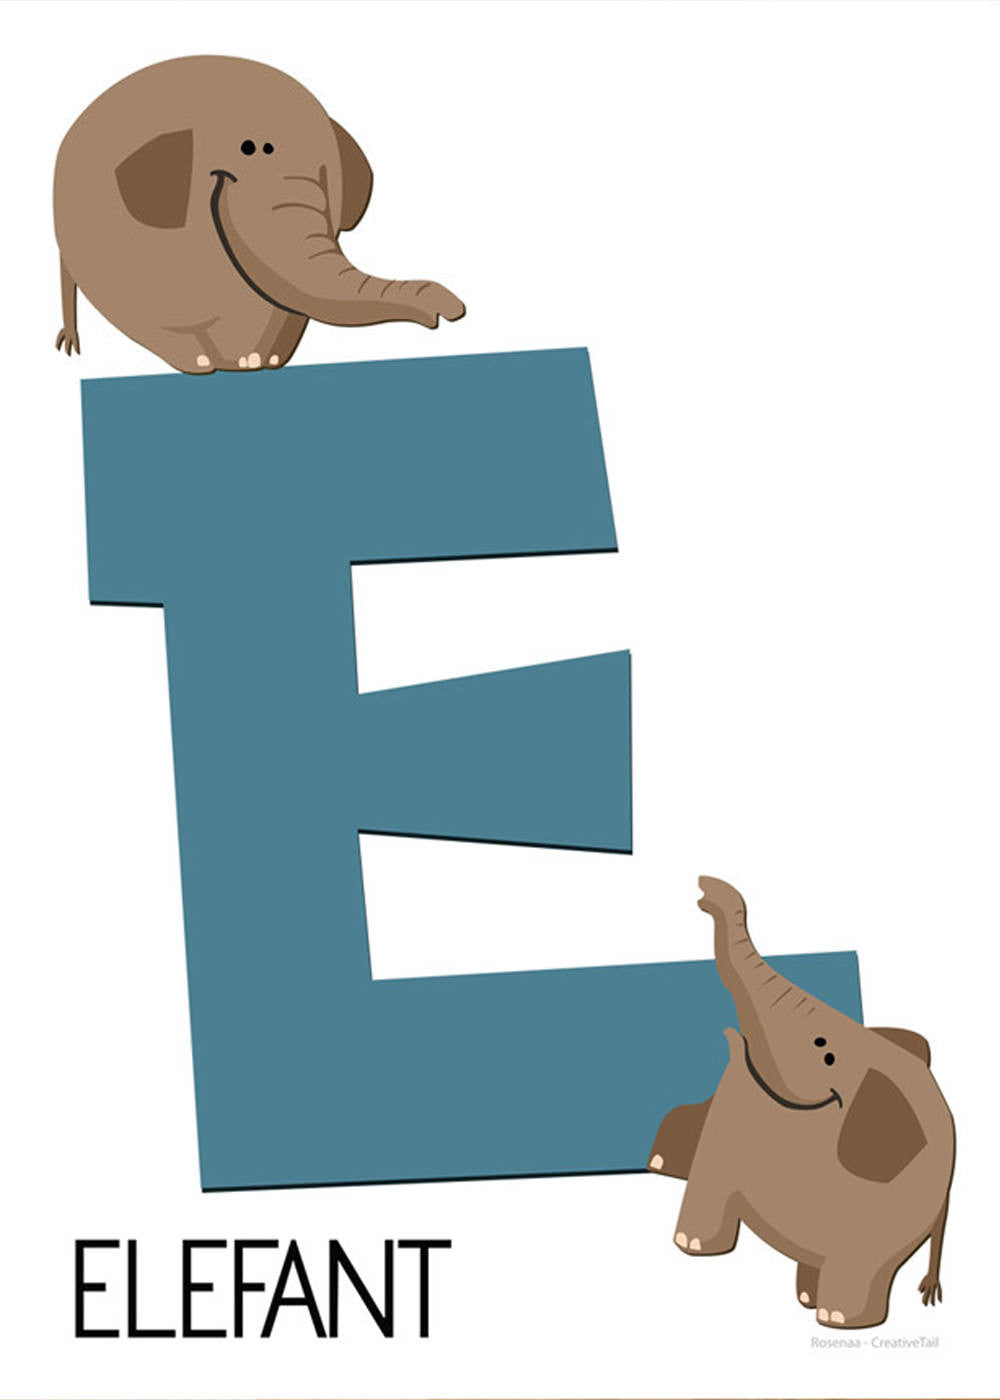 E for Elefant fra Rosenaa